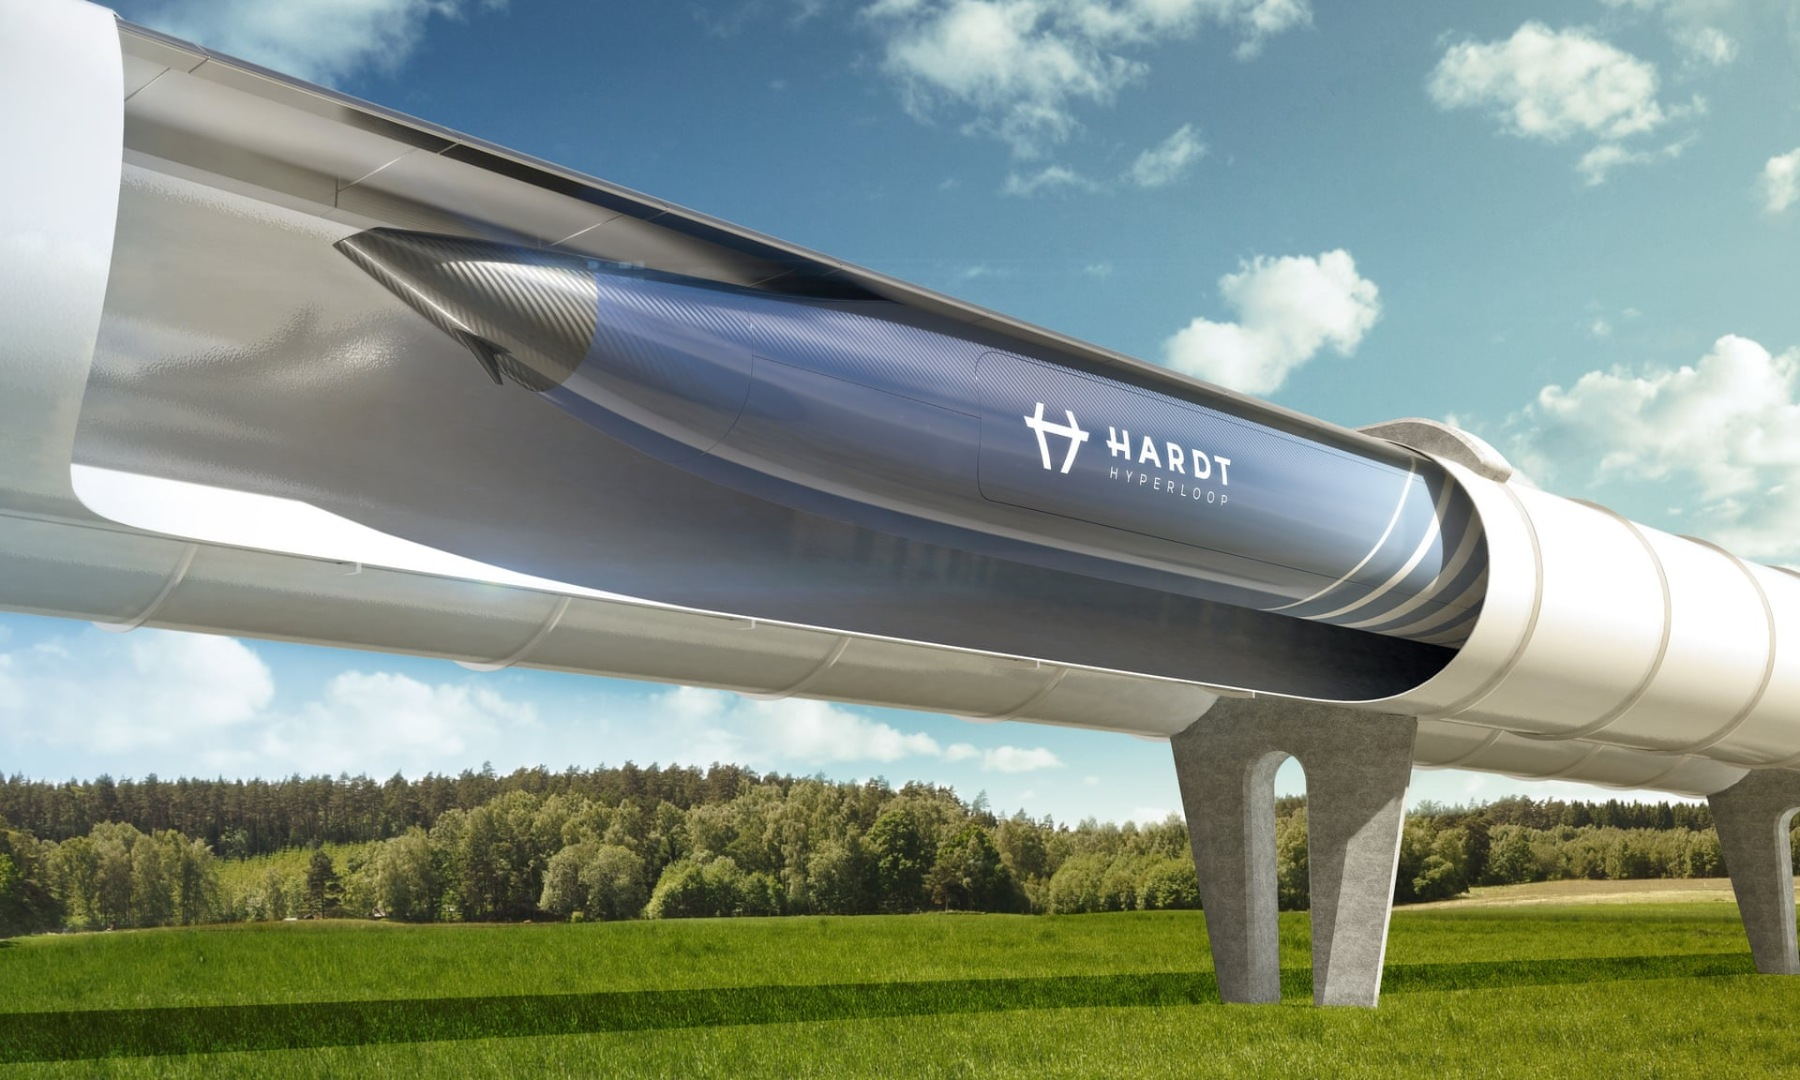 Голландия планирует соединить линиями Hyperloop пять европейских городов